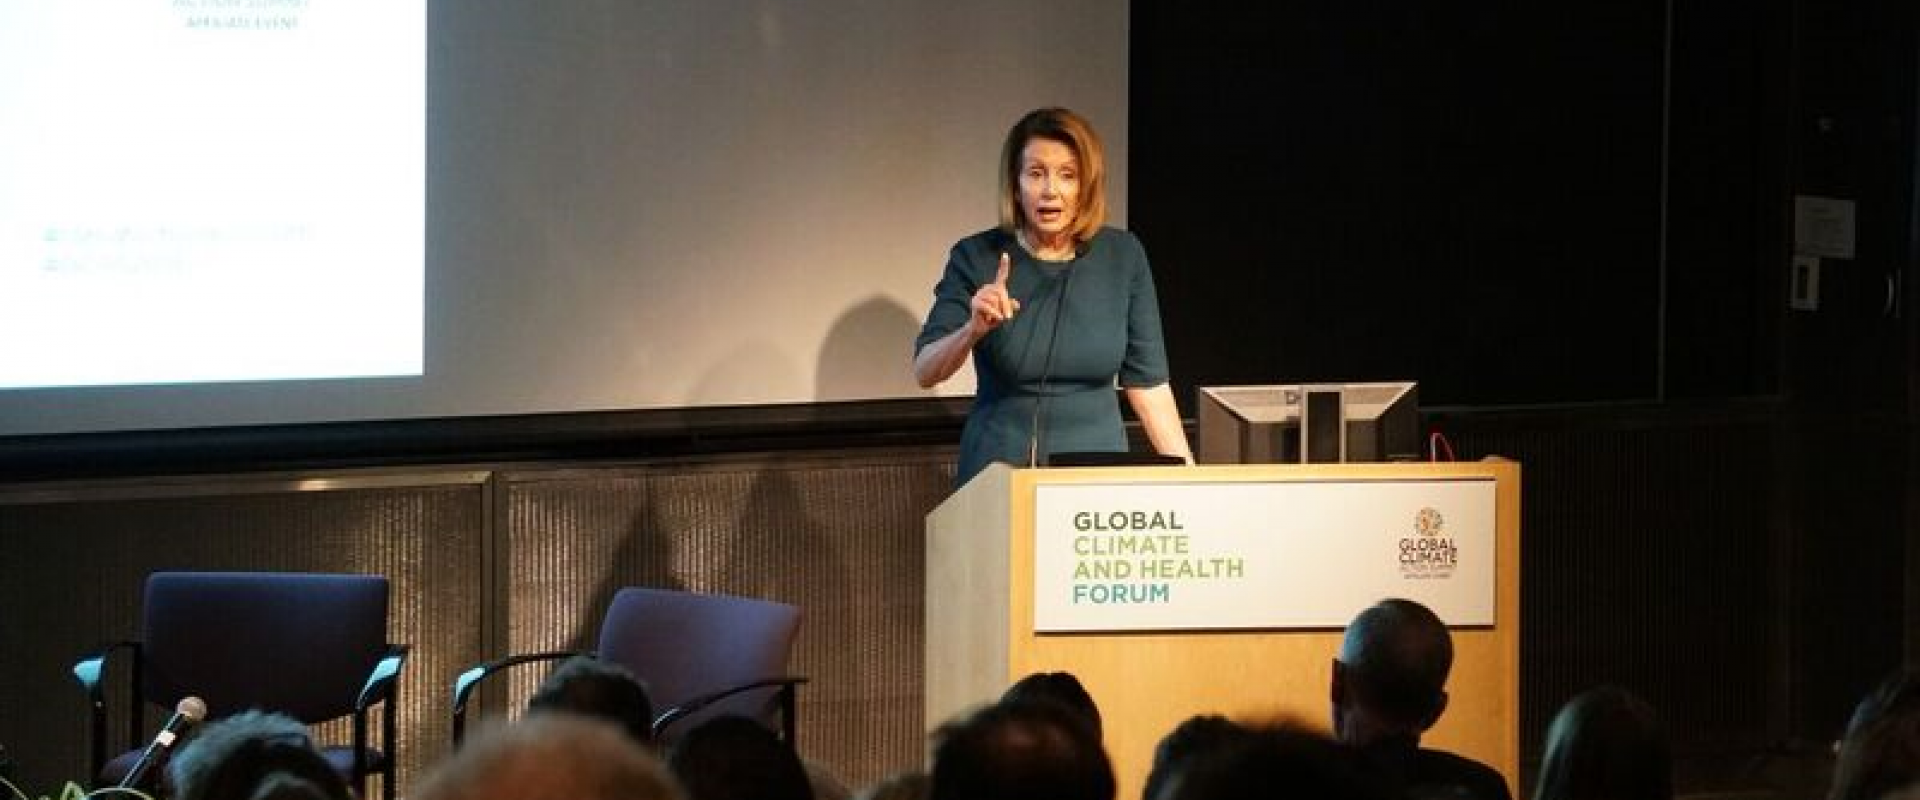 Congresswoman Pelosi delivers remarks at the Global Climate and Health Forum at UCSF to discuss harnessing the will, talent and ambition of the public health community to tackle the global climate crisis to safeguard public health, avert environmental cat